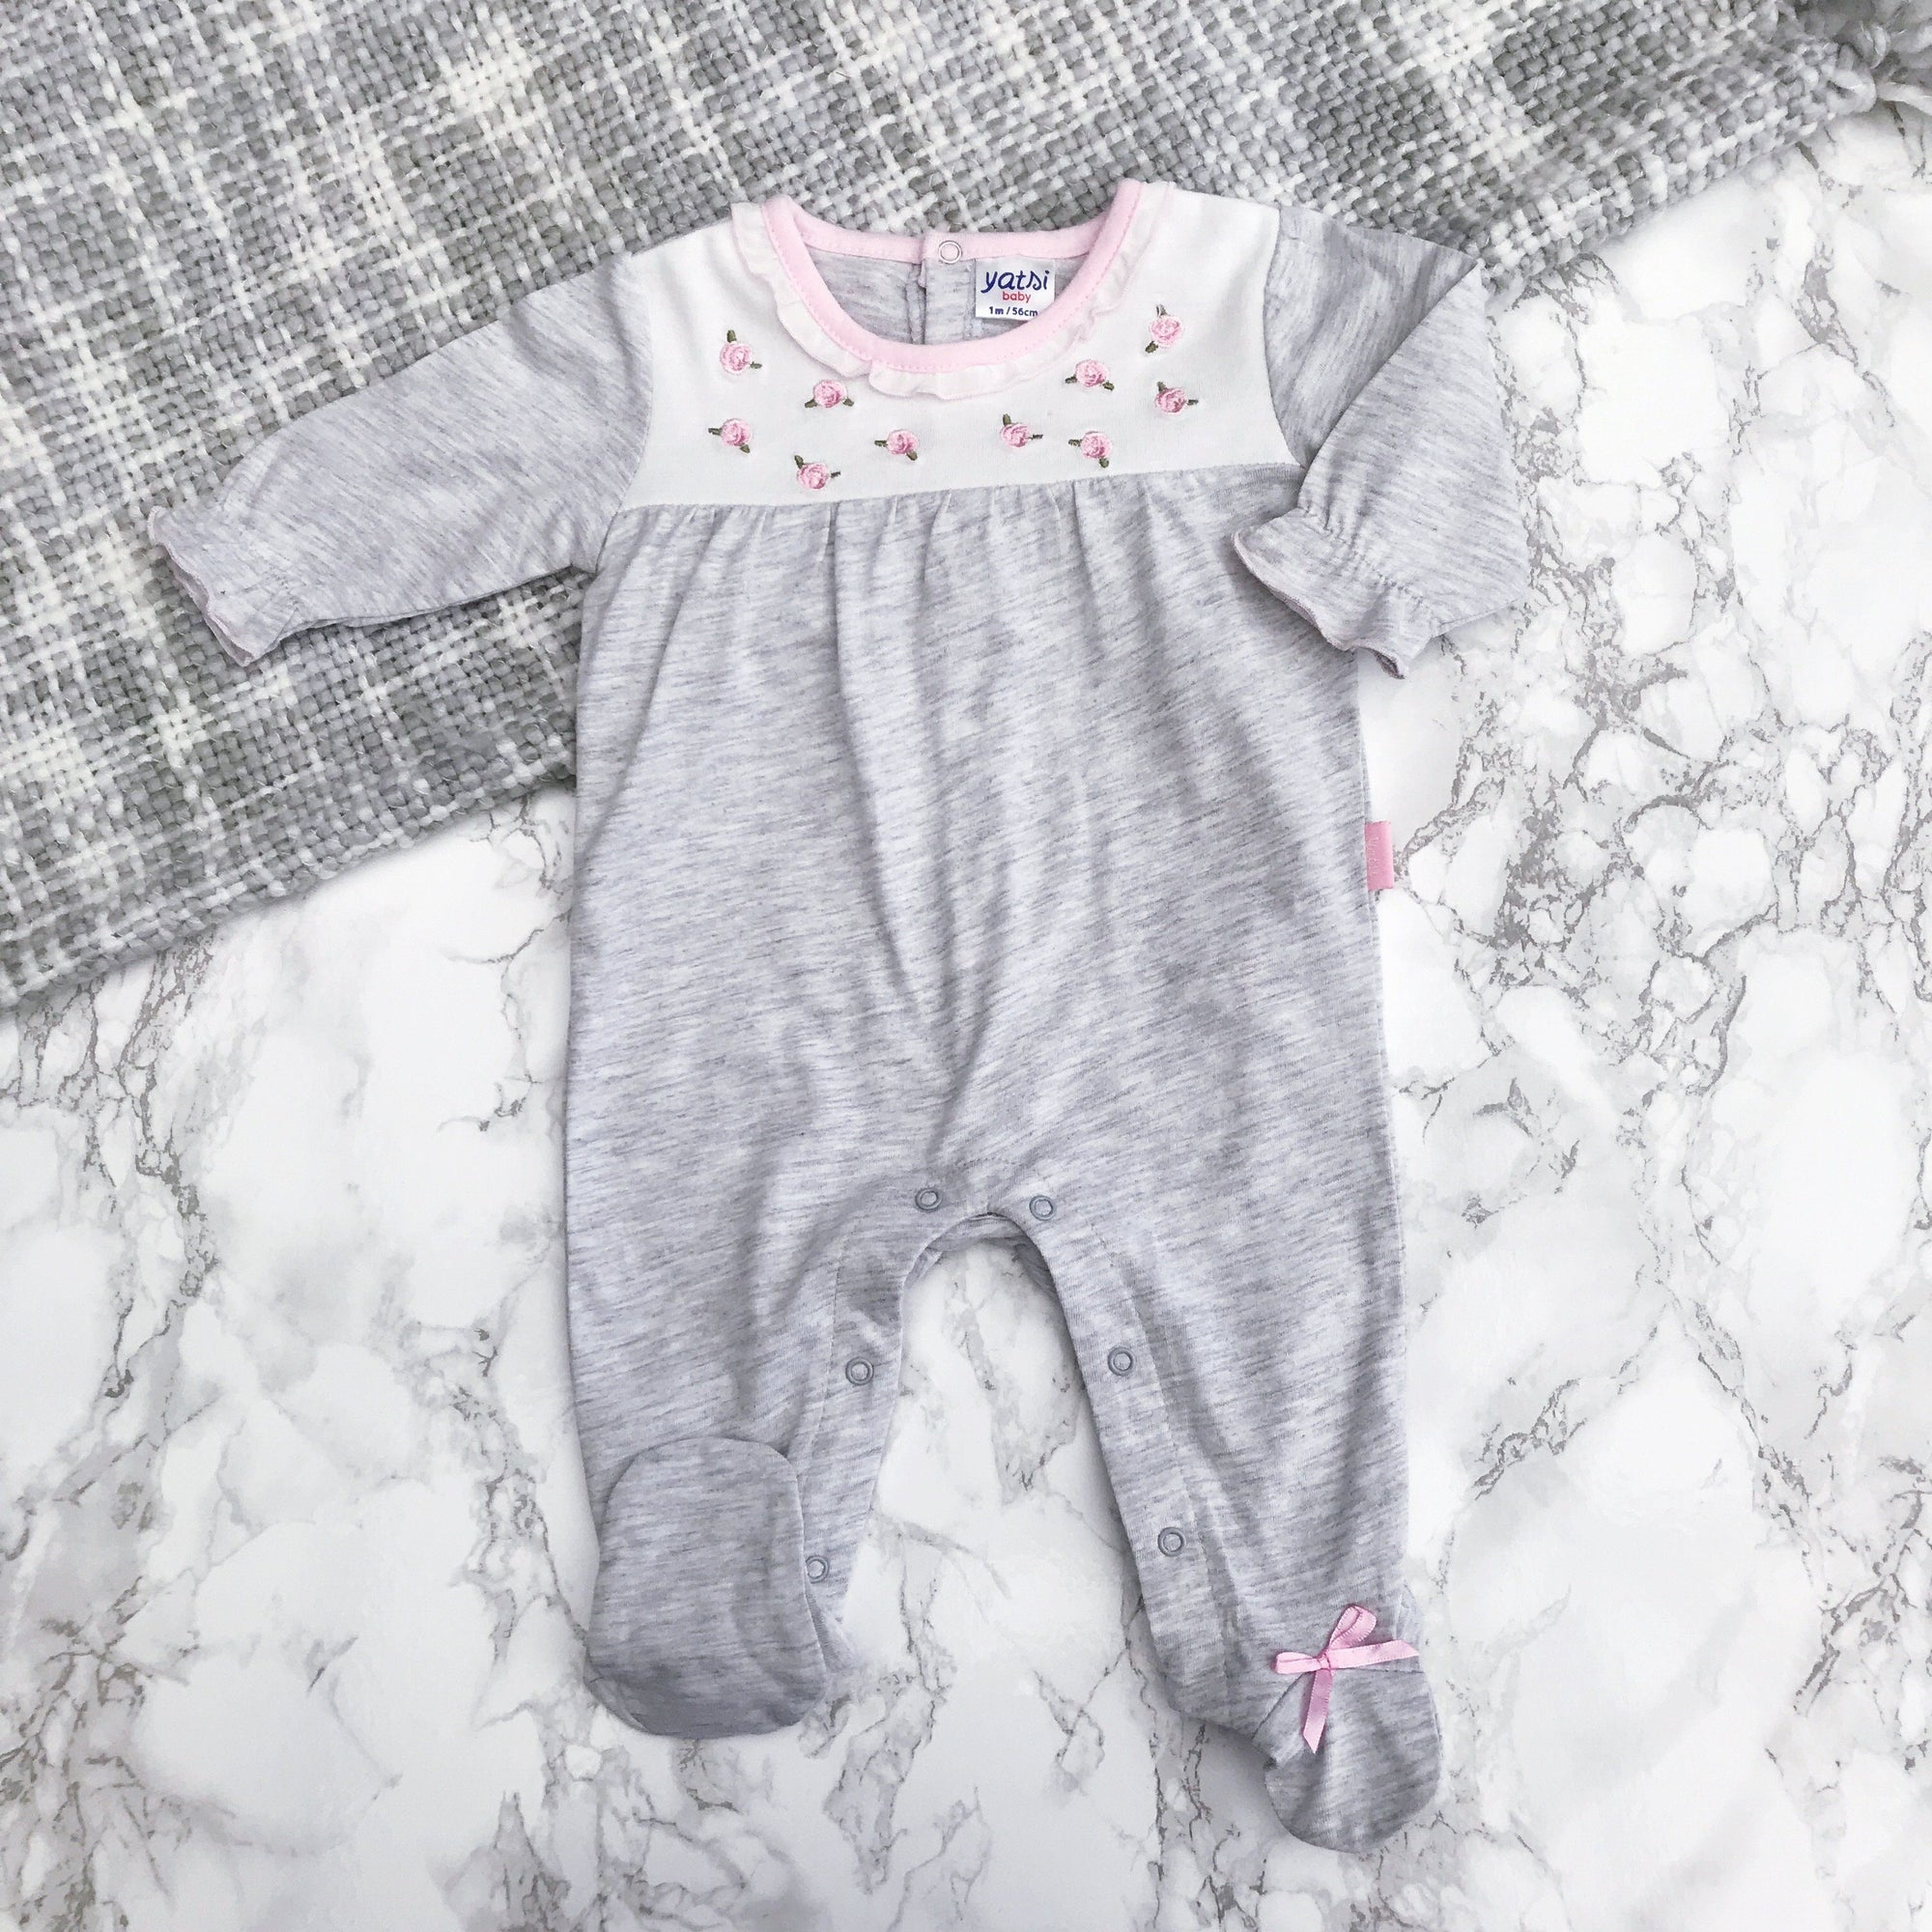 Yatsi Grey & Pink Floral Sleepsuit | Millie and John